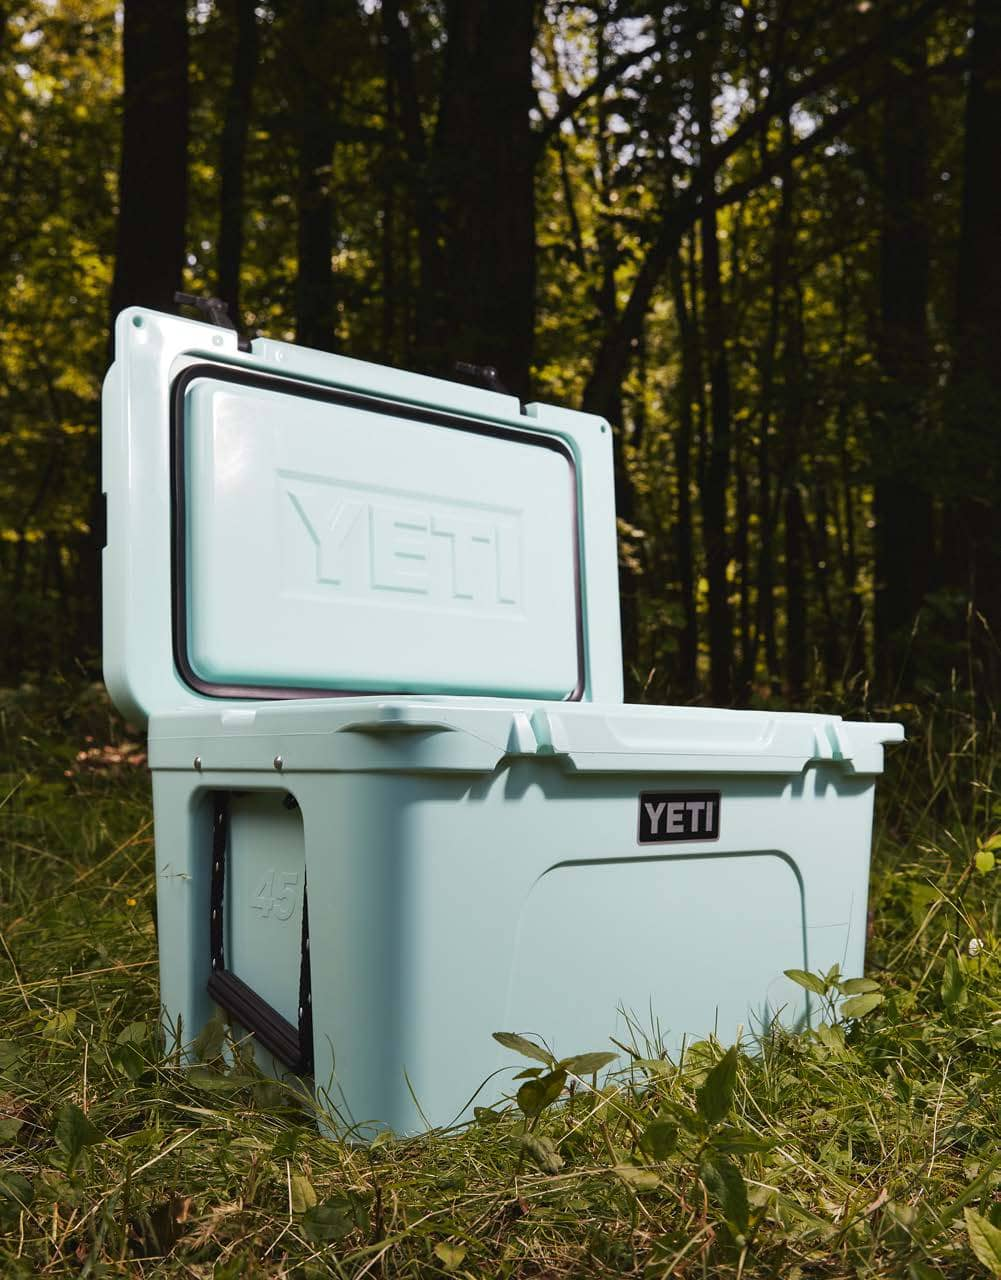 How The Yeti Tundra Became The Coolest Cooler